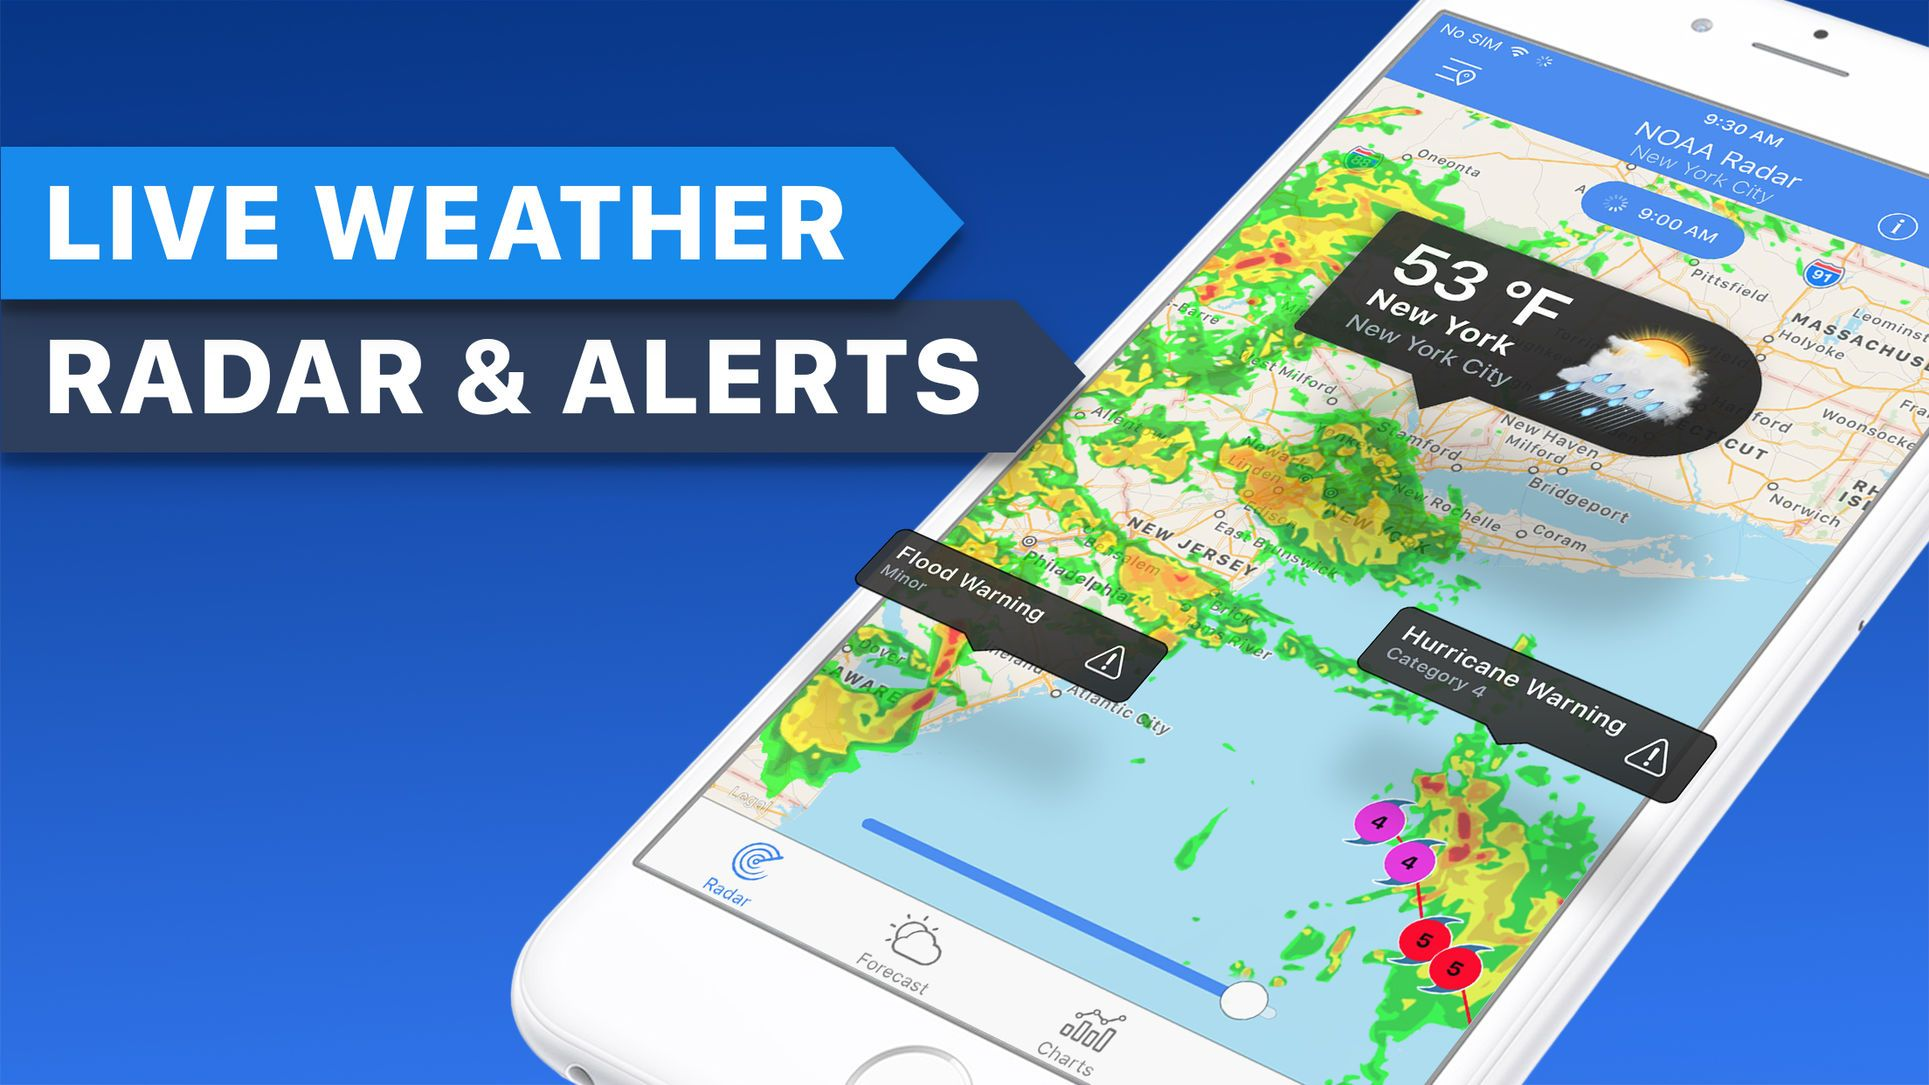 NOAA Radar Weather Weather, Weather alerts, Game design